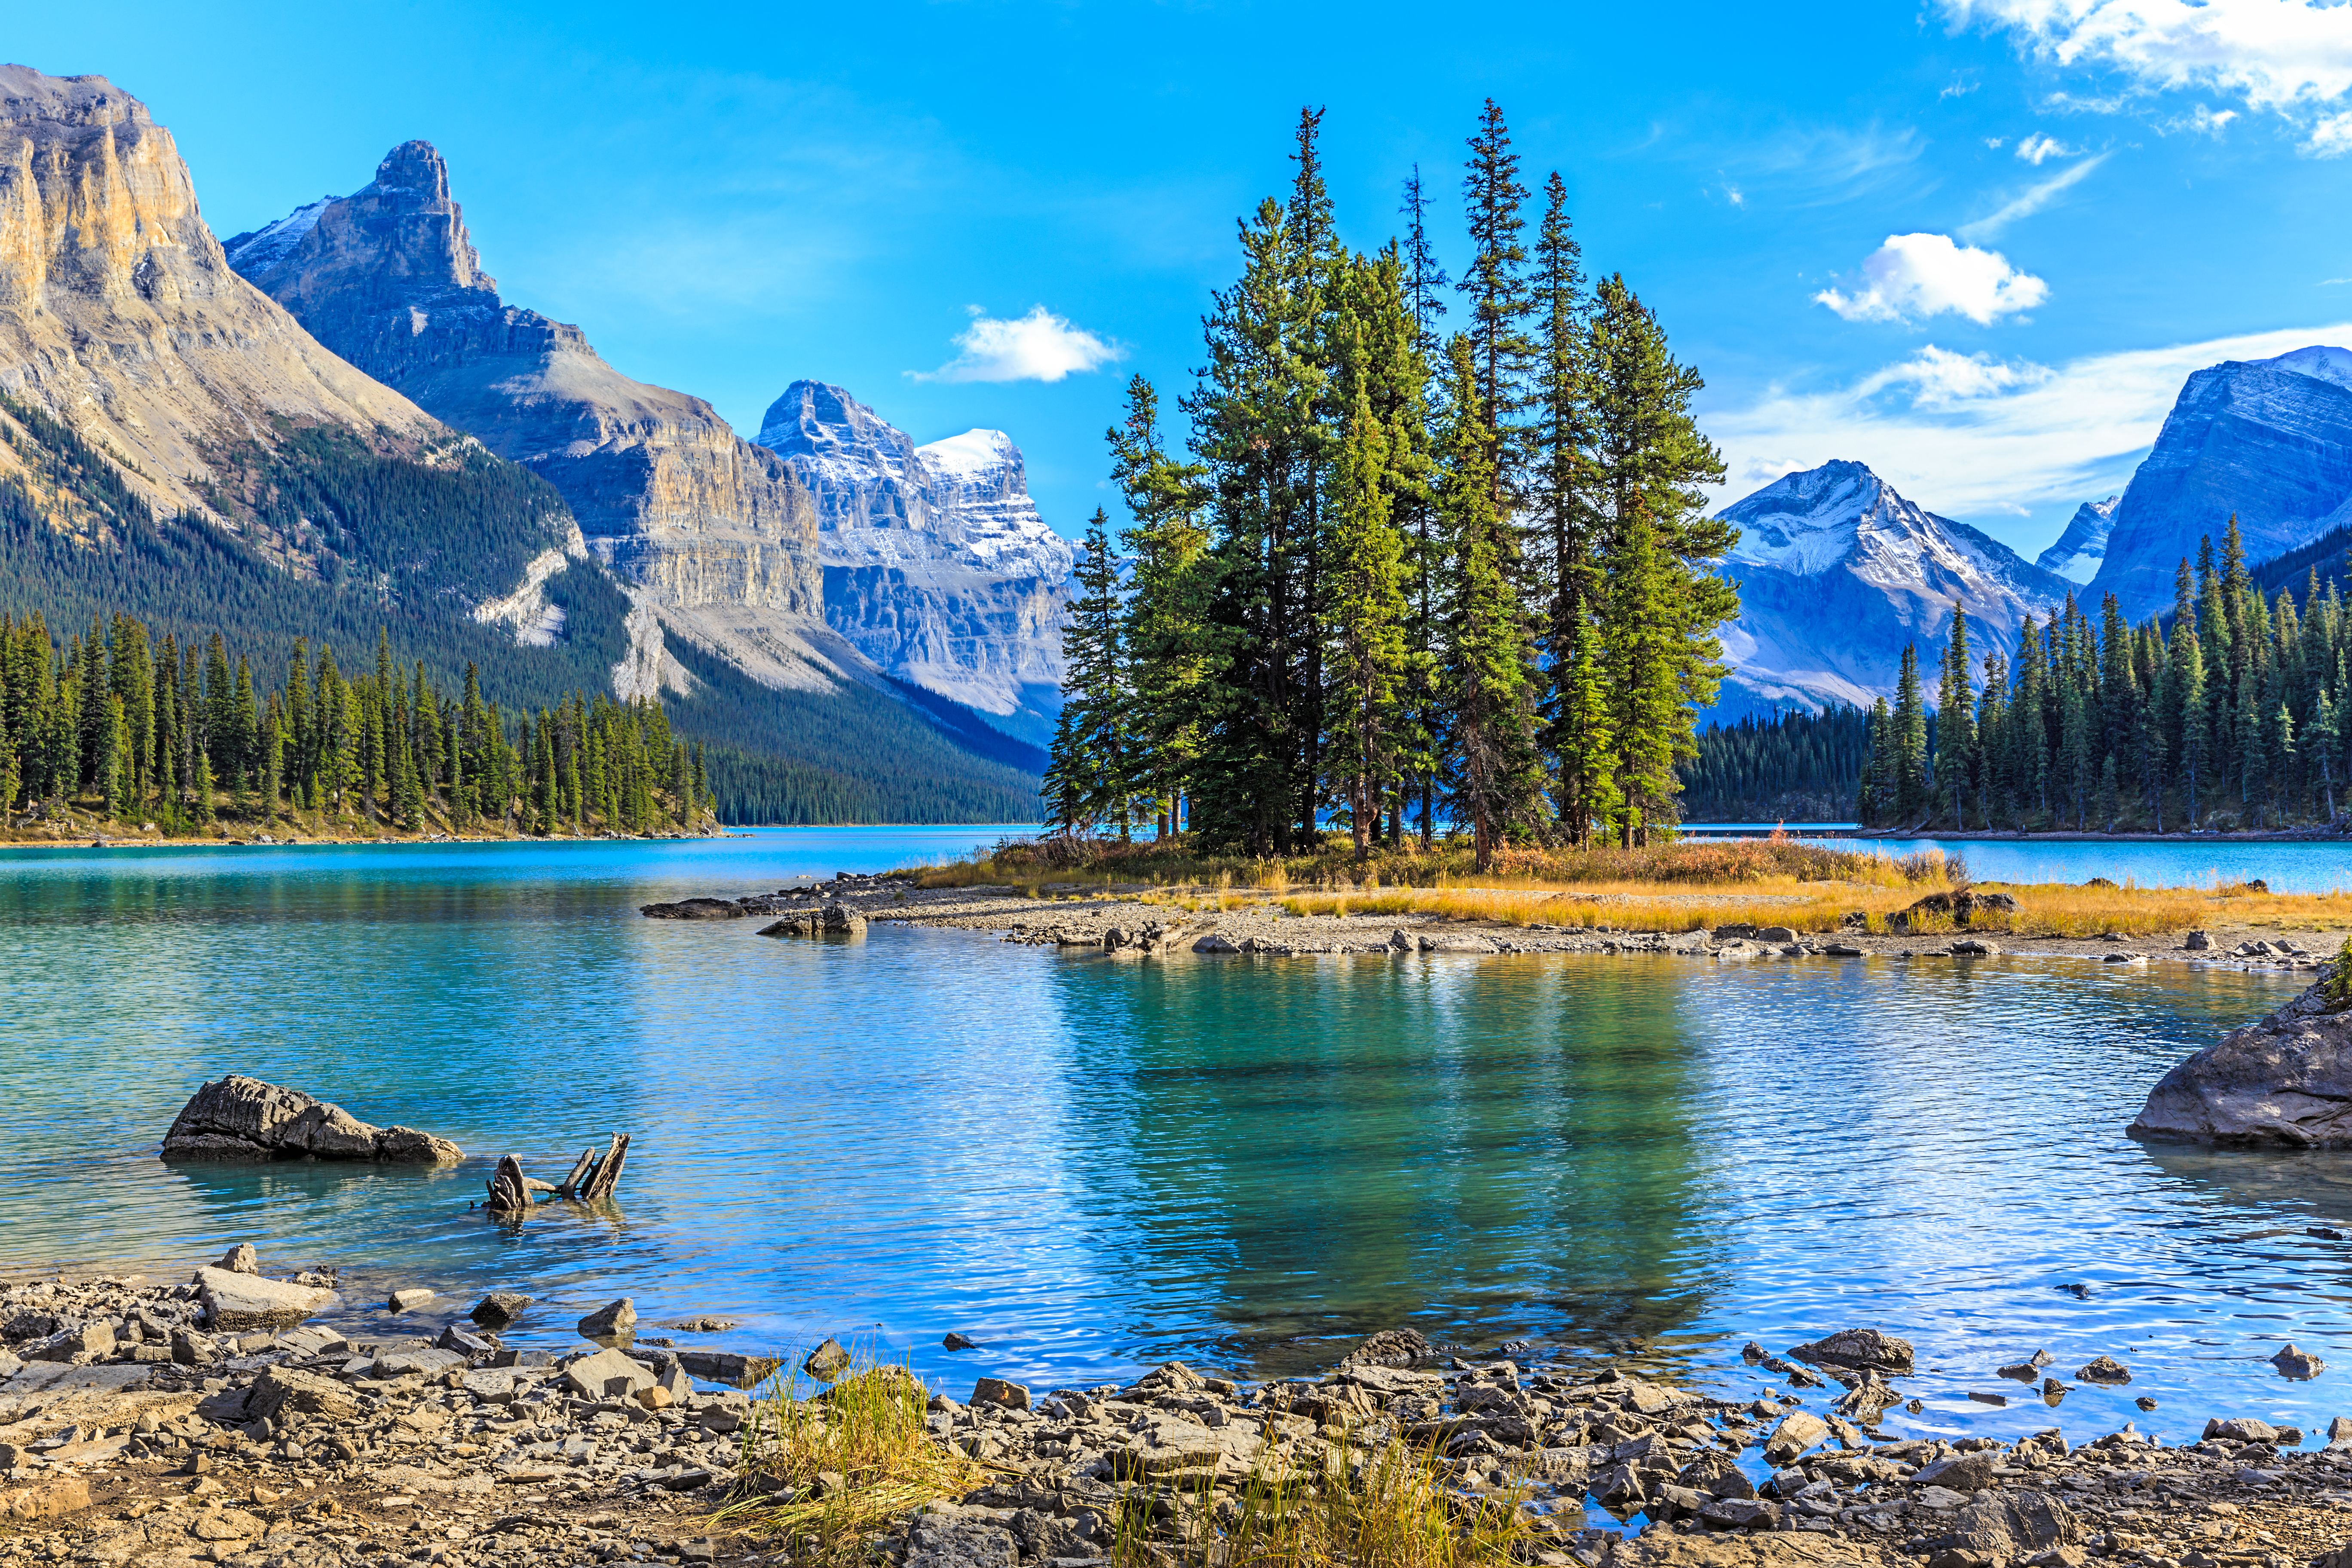 Maligne Lake, Jasper National Park, rejser til Canada, check Point Travel